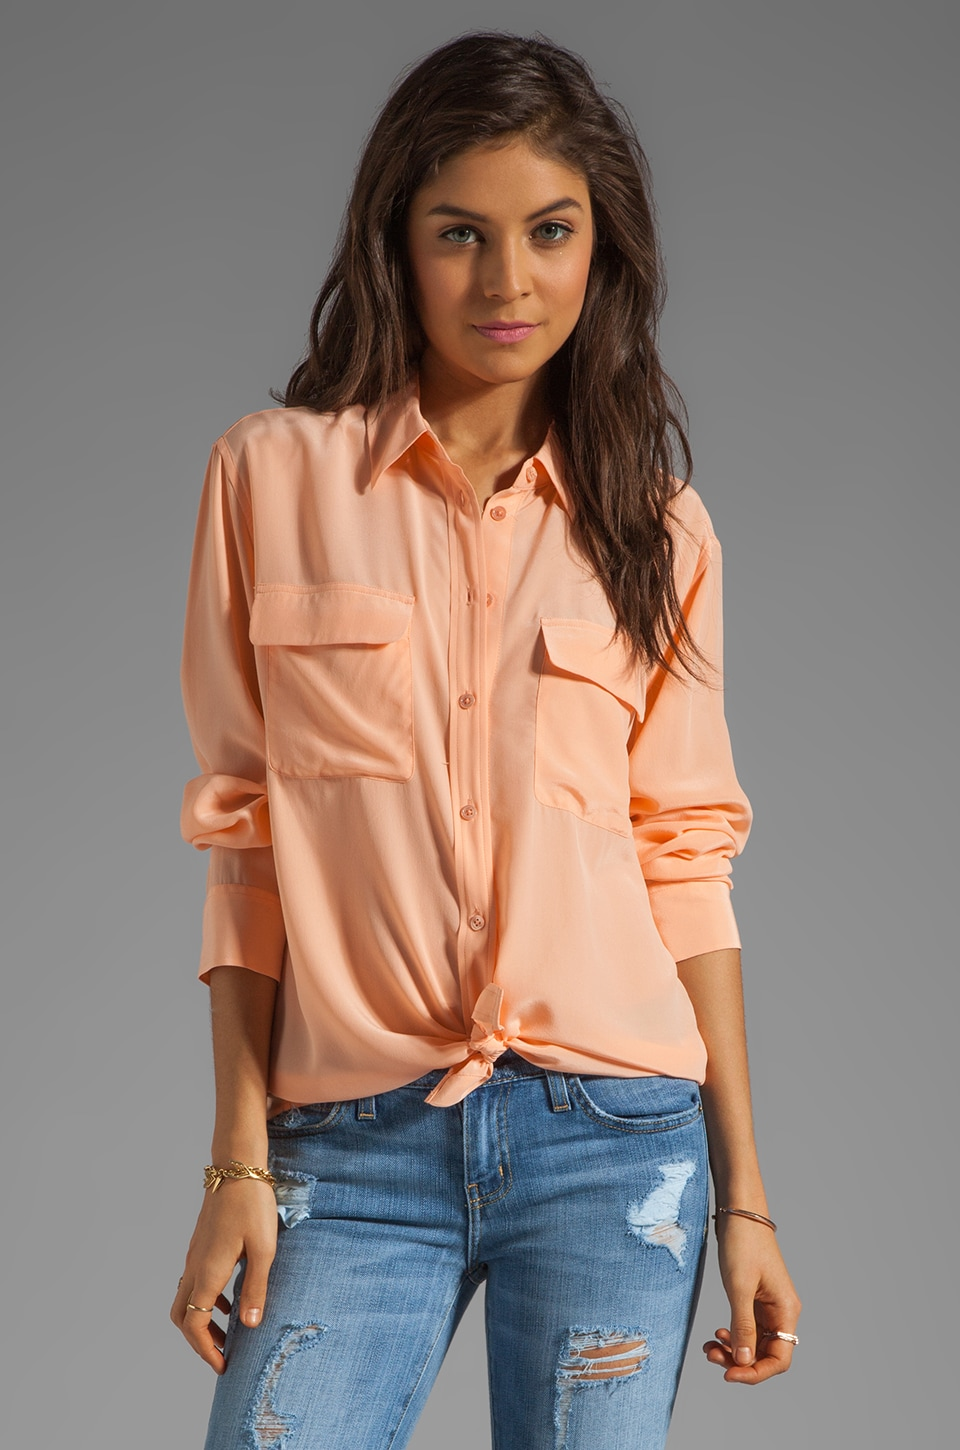 Equipment Signature Blouse in Peach Nectar